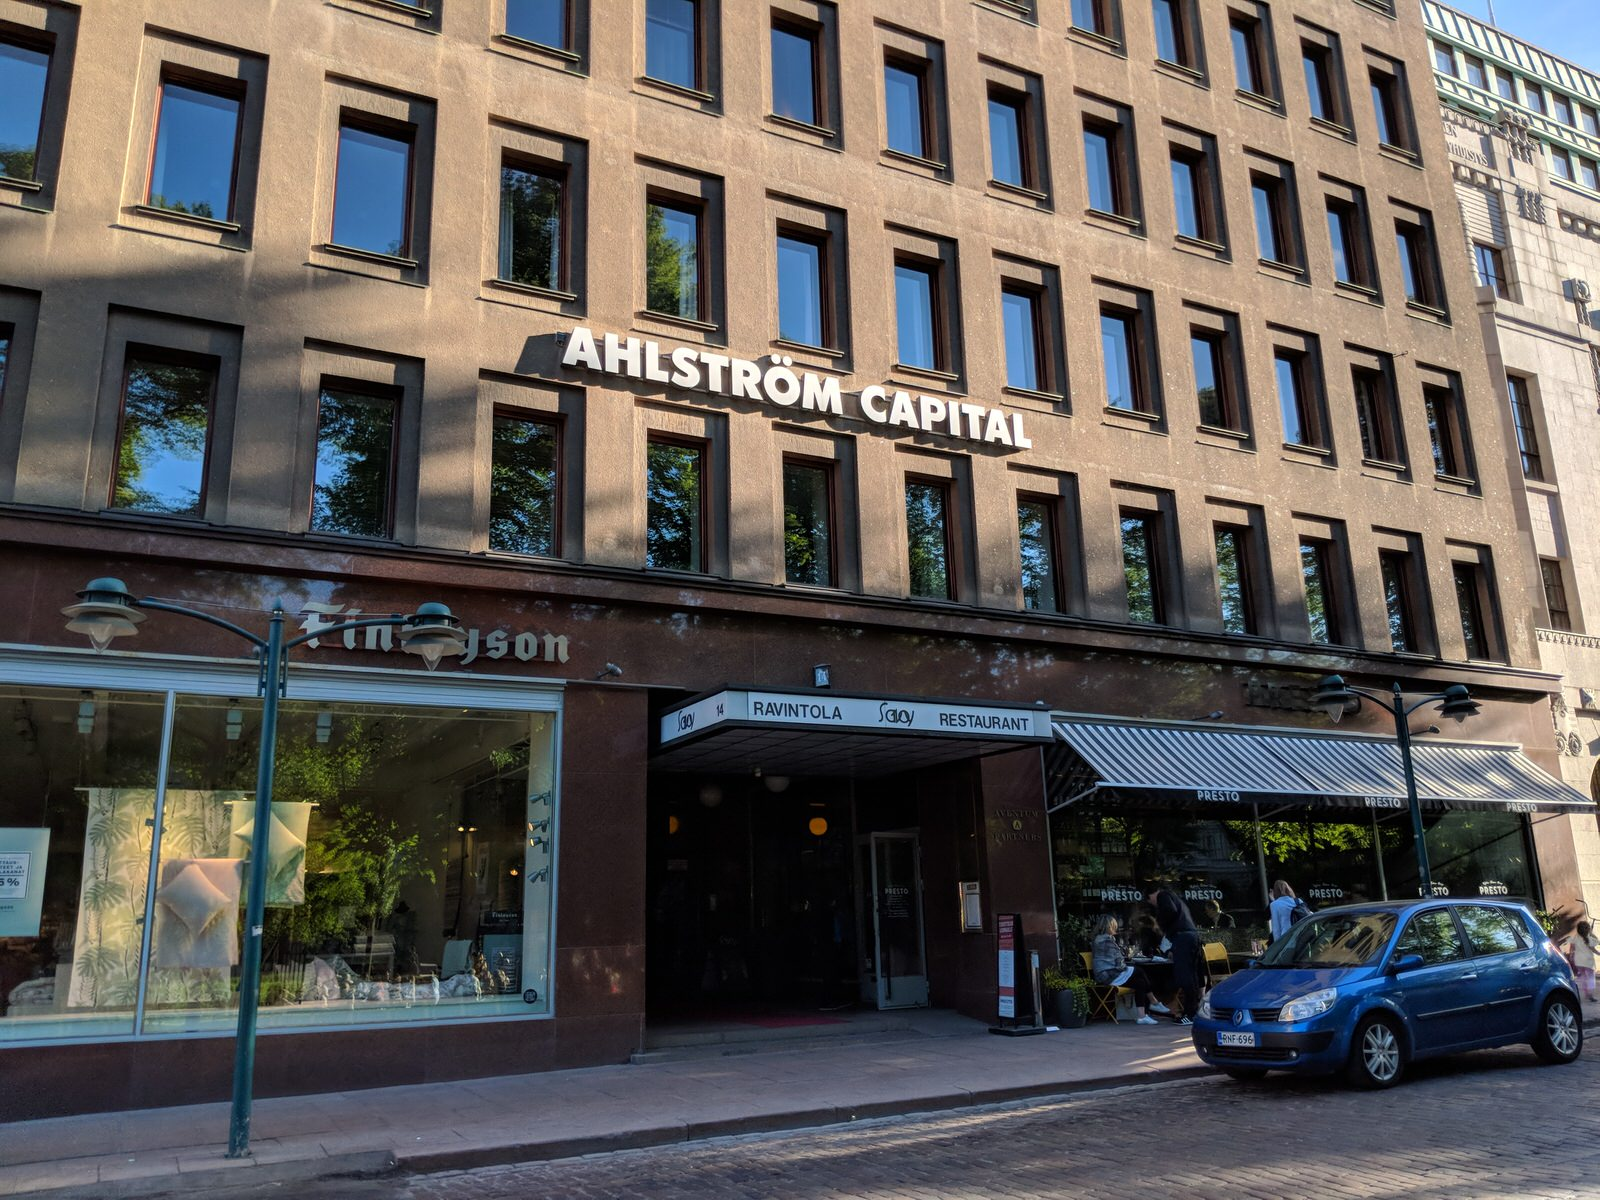 Ahlstrom Capital